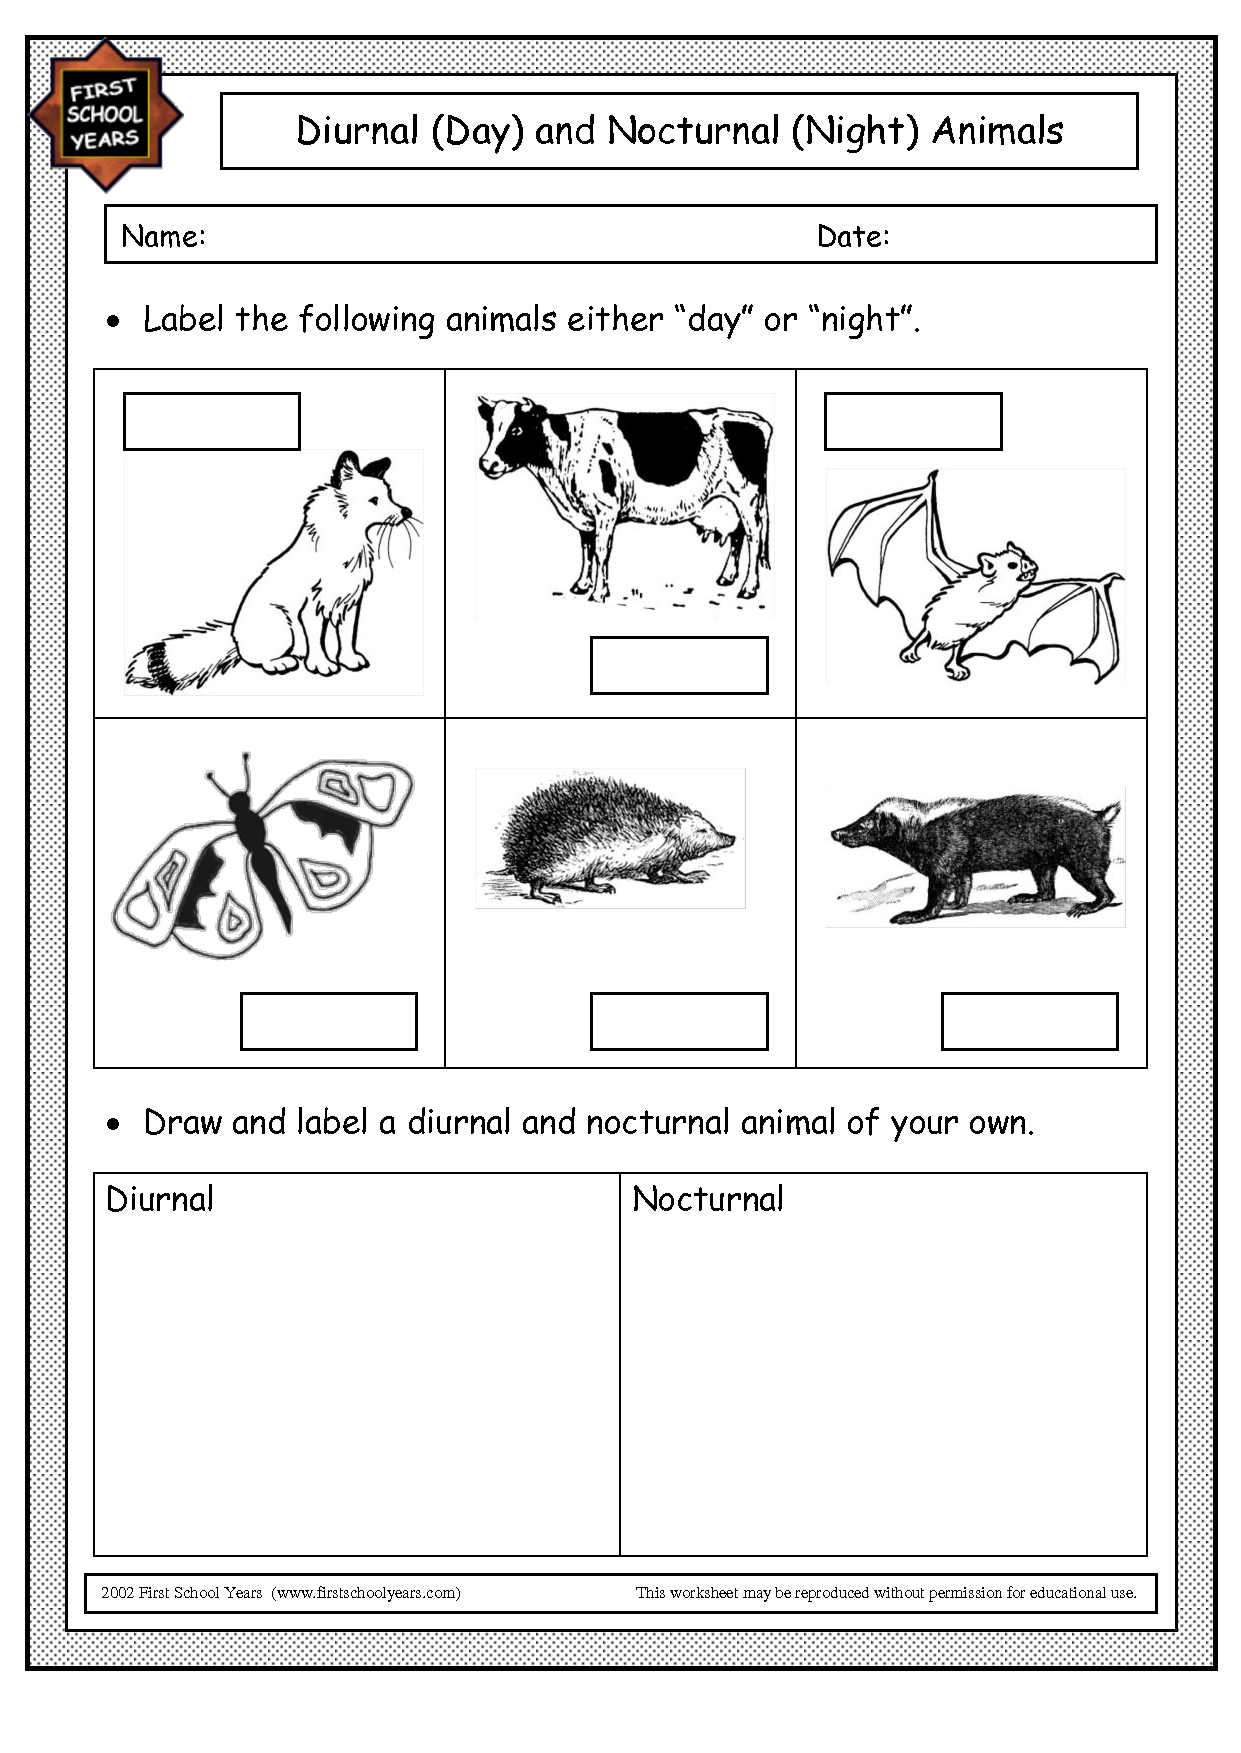 Preschool Worksheet Animal Vs Plant